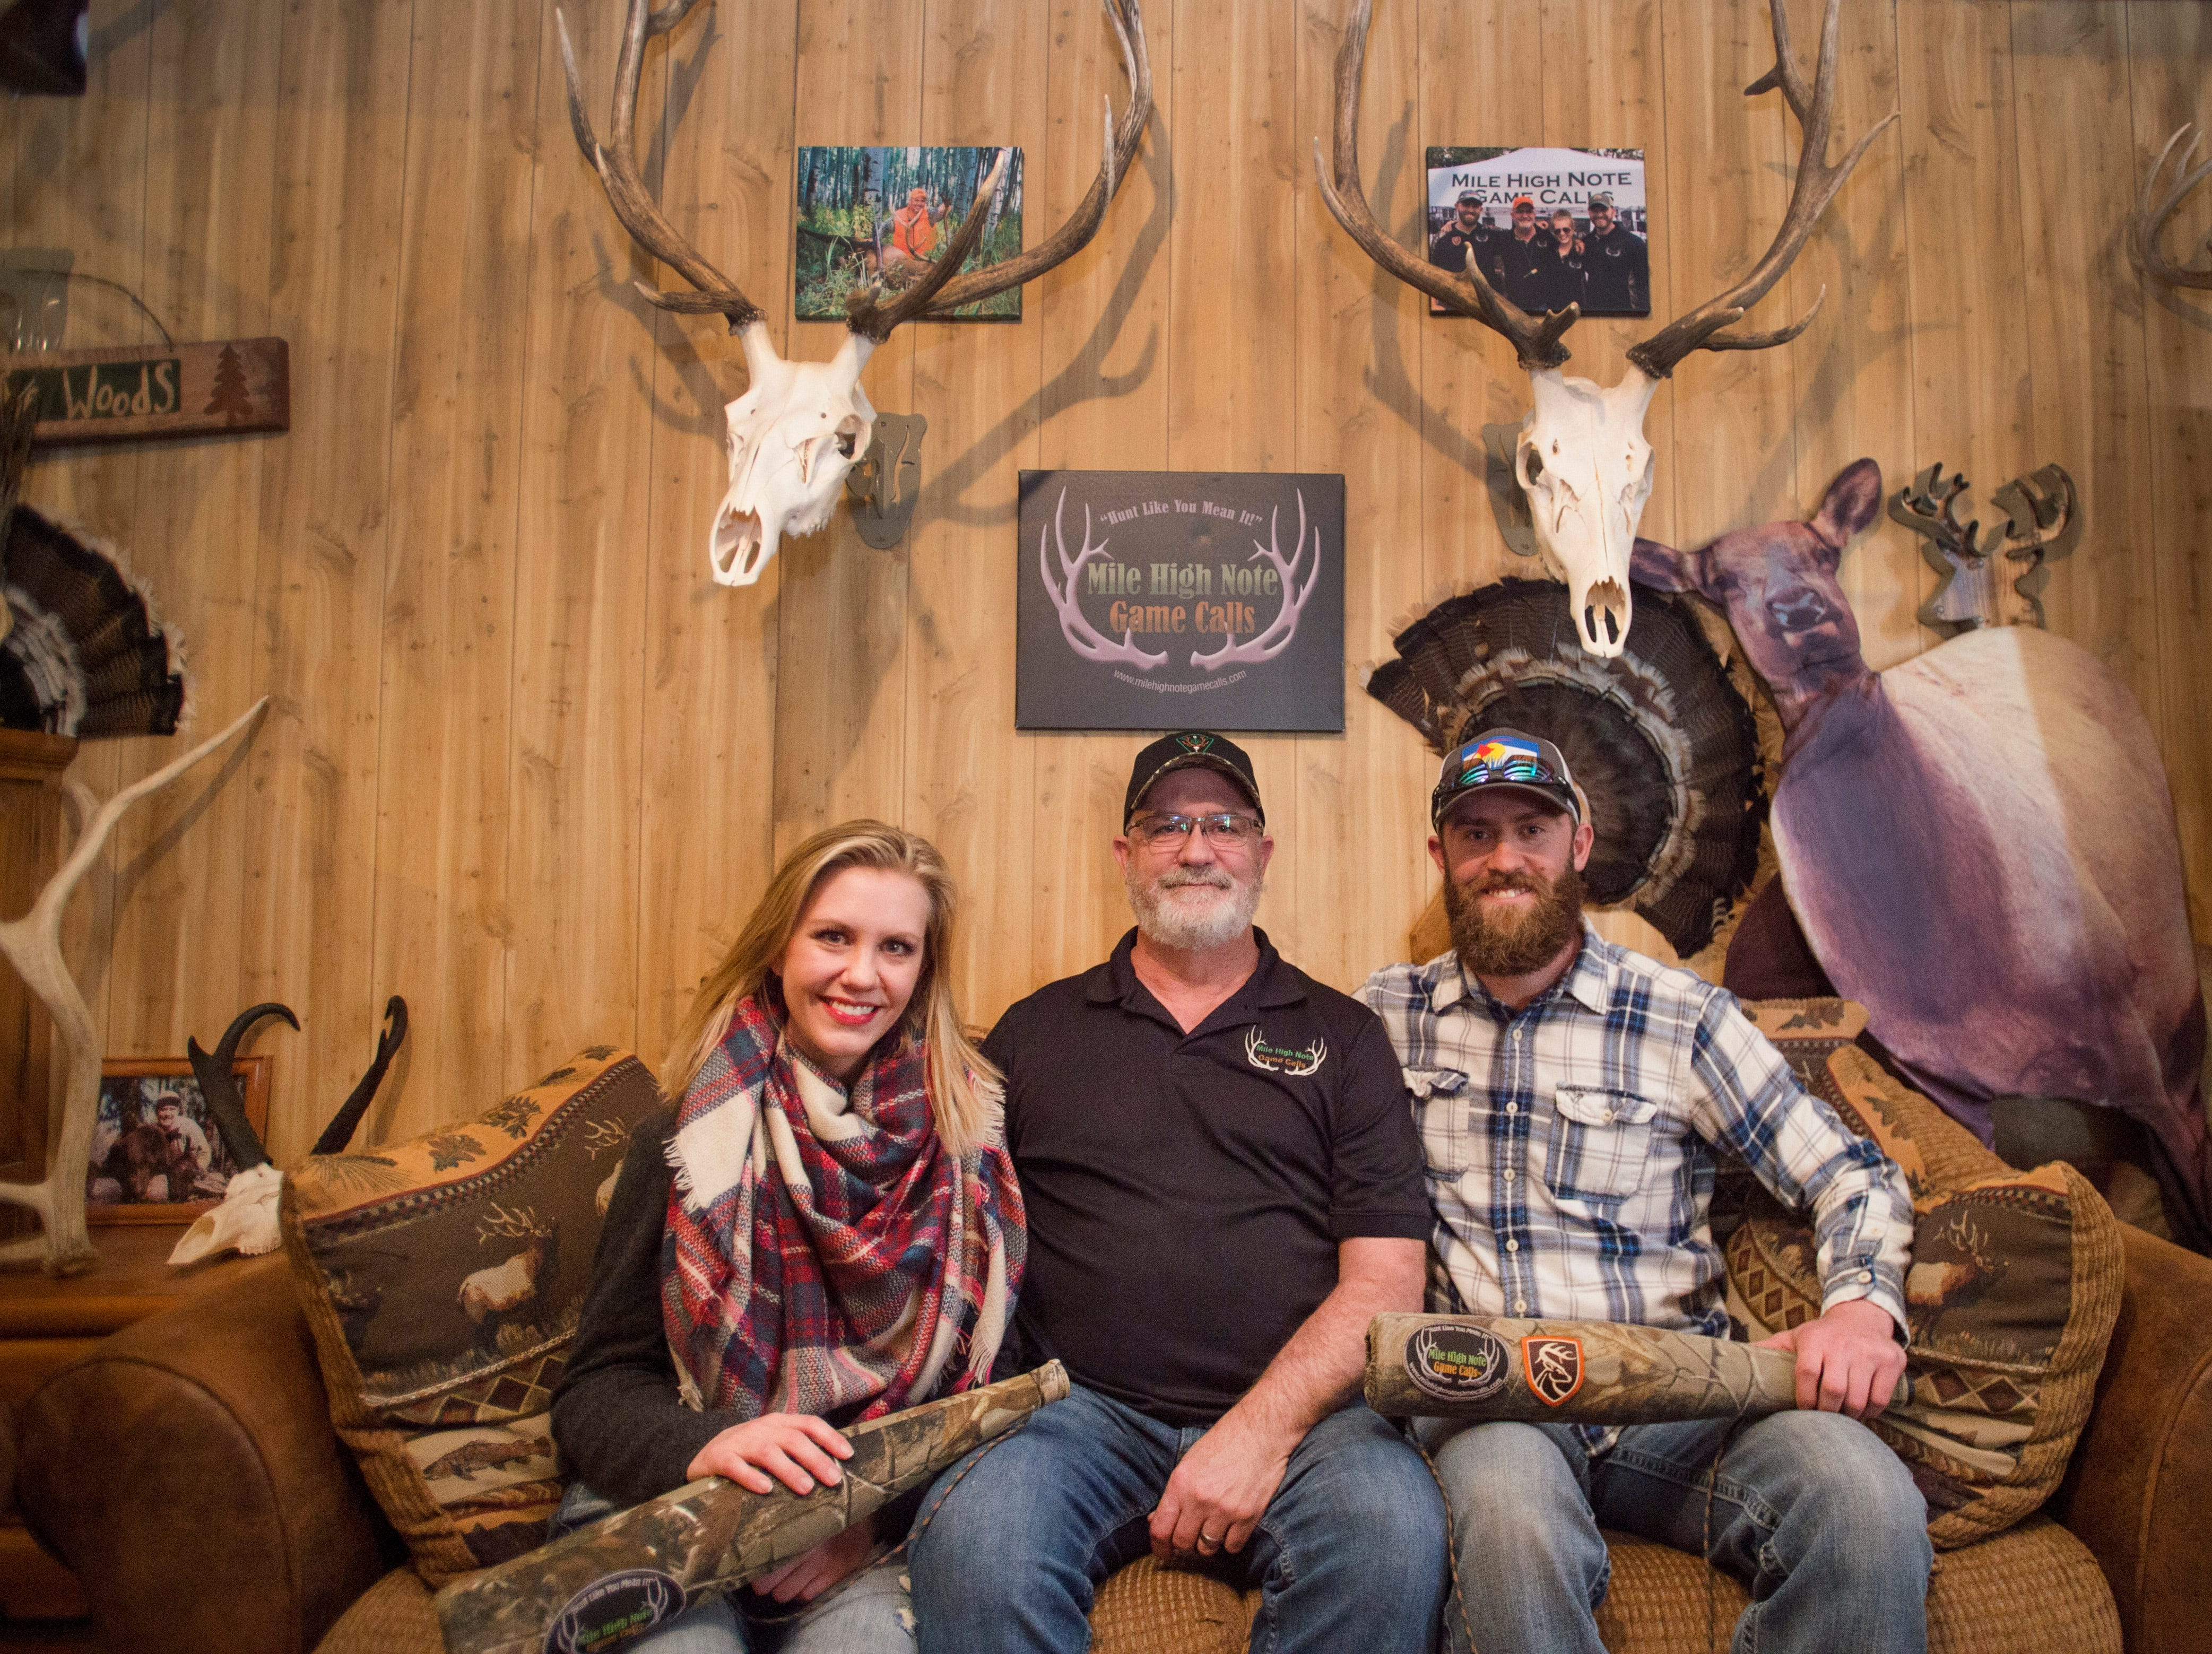 Tom Diesing, center, poses for a photo with his children, Jessi Slaten and Thomas Diesing at their home in Loveland on Wednesday, March 28, 2018. The family has won state and national titles for their ability to replicate elk calls.